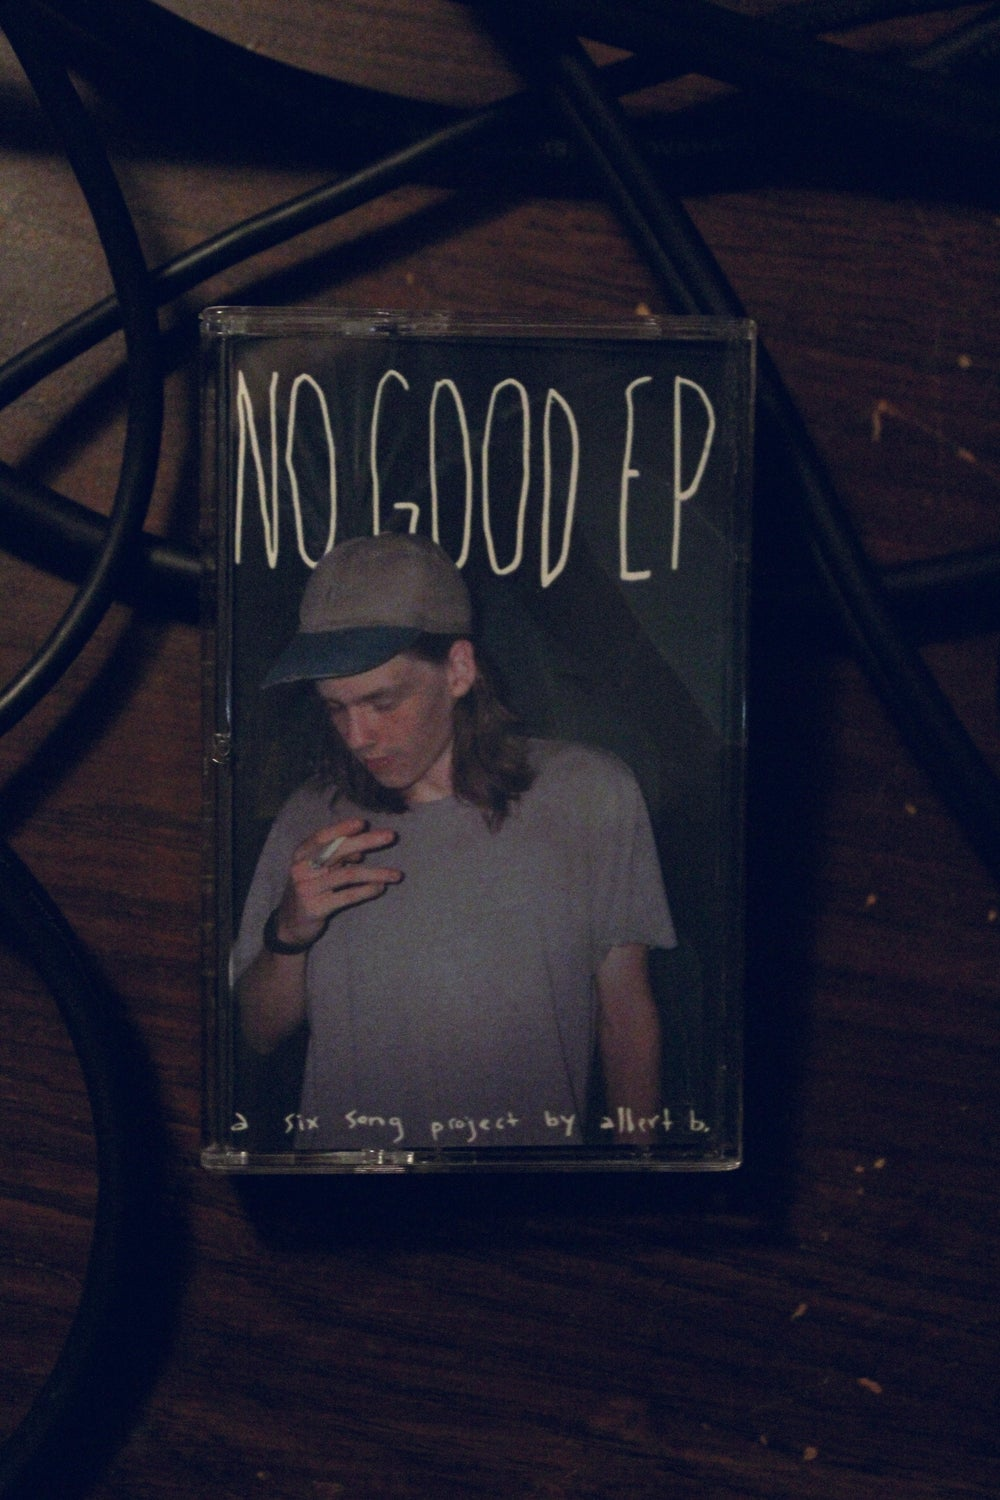 Image of no good cassette